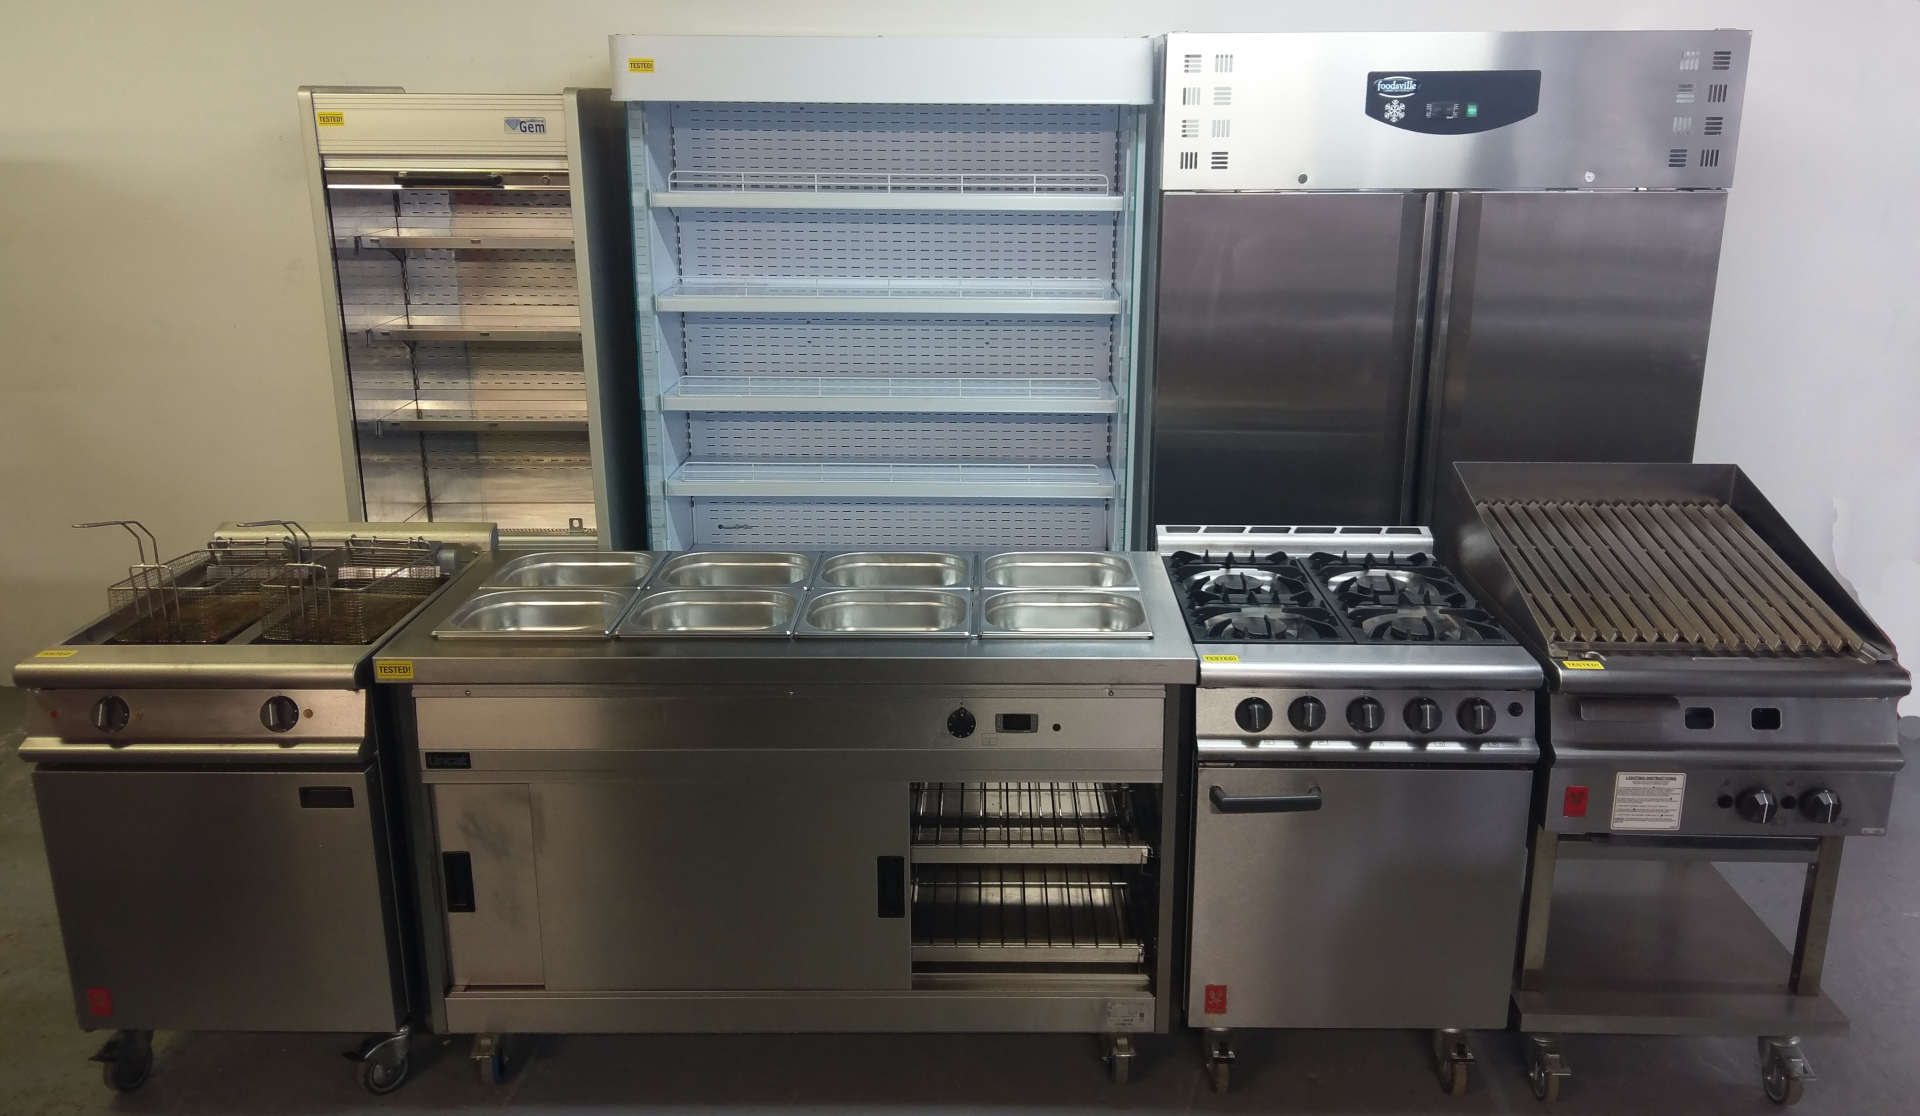 Used <br>Cooking, <br>Hot Storage,<br>Refrigeration & Miscellaneous Equipment